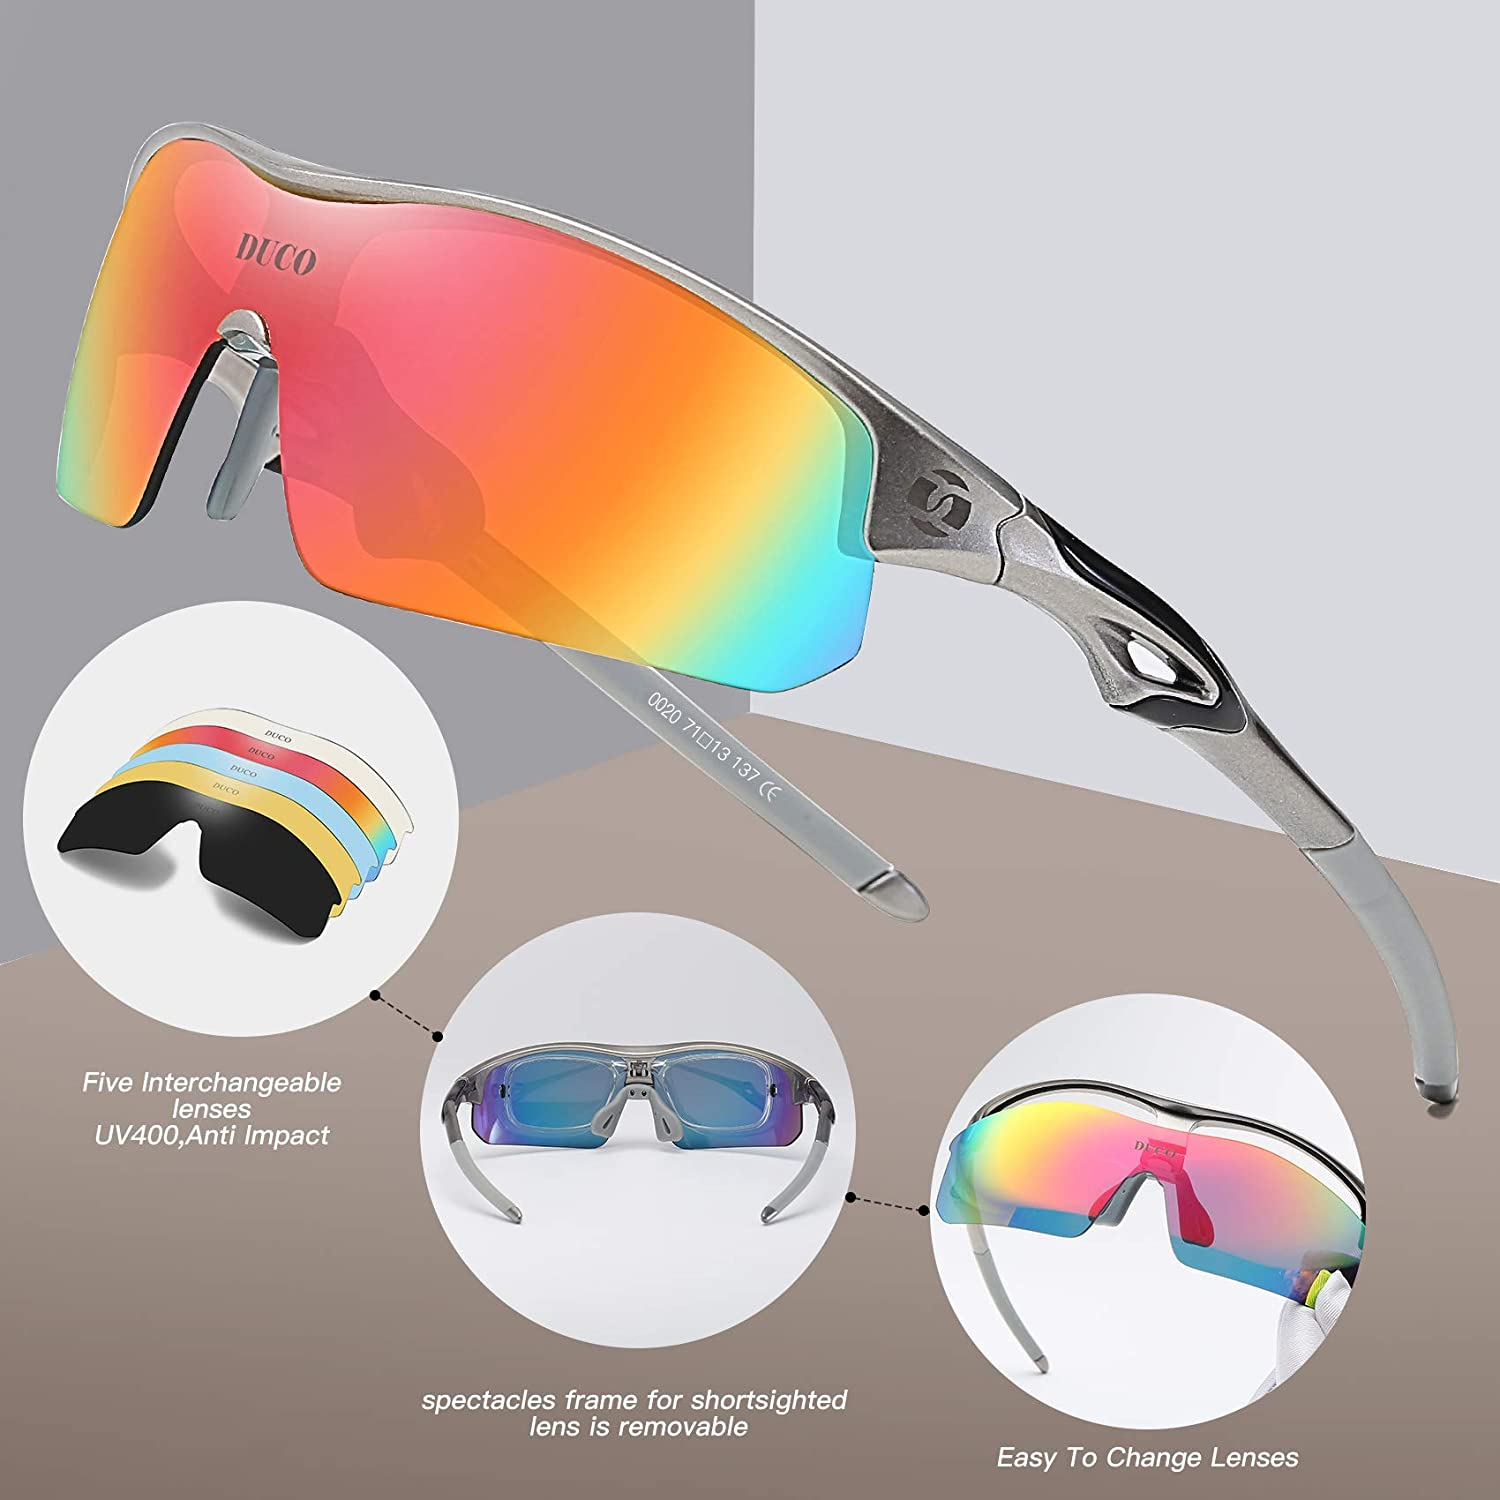 ICOCOPRO Polarized Sports Sunglasses Men Women UV 400 Protection Sunglasses for Cycling Fishing Golf Hiking Unbreakable Superlight Frame – 4 Colors